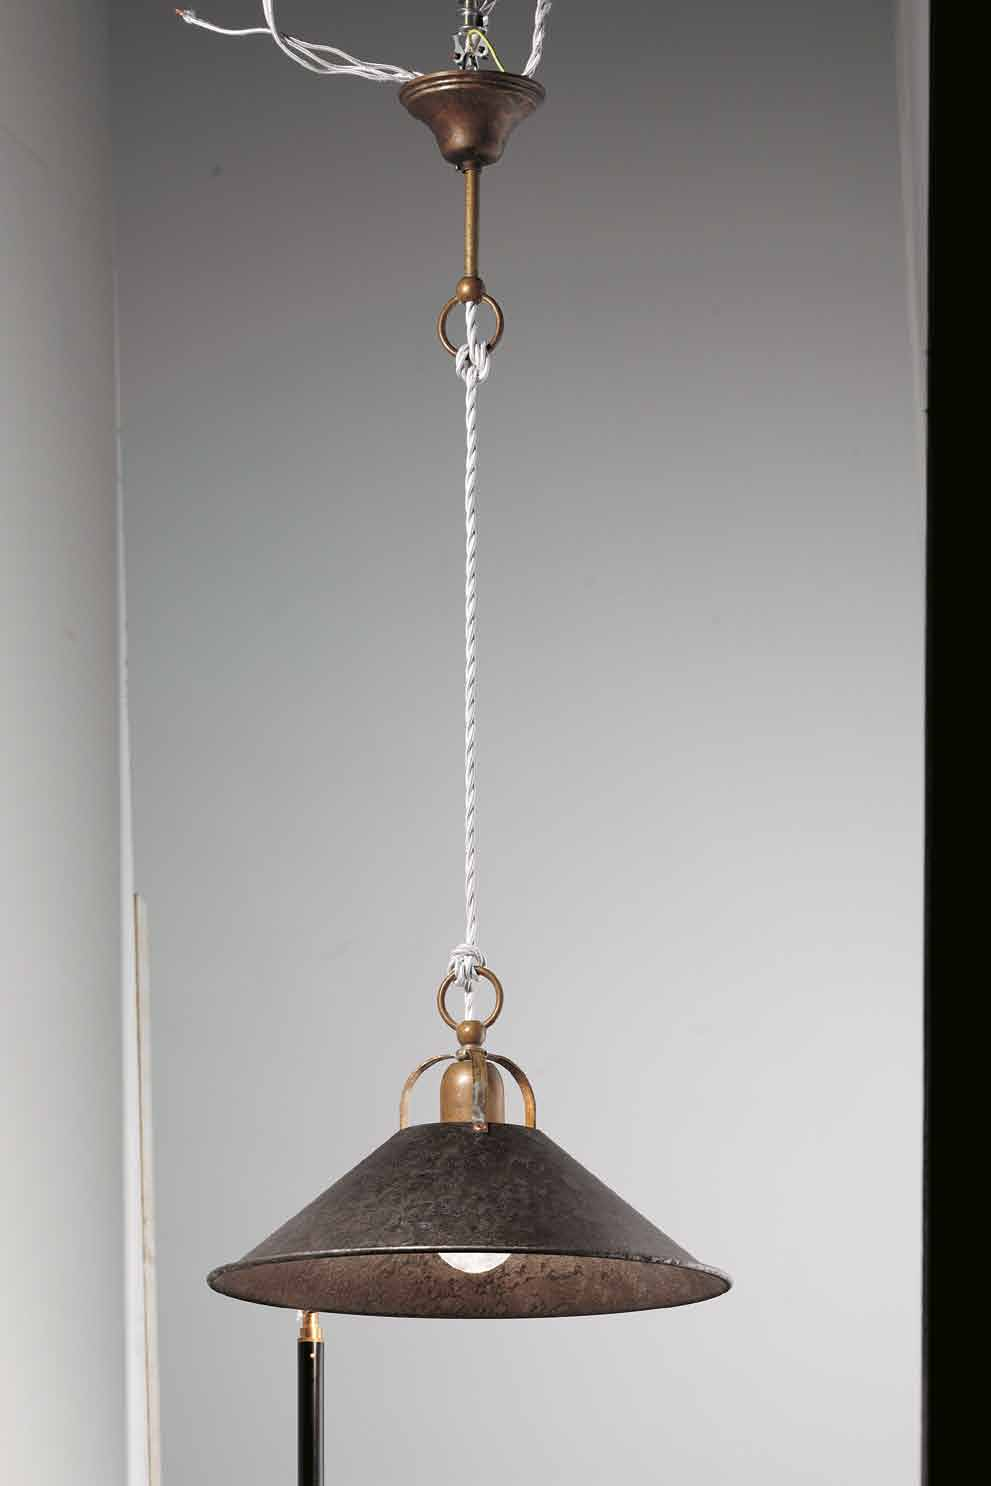 Collection for interior with conical forms in a solution of antiqued brass.